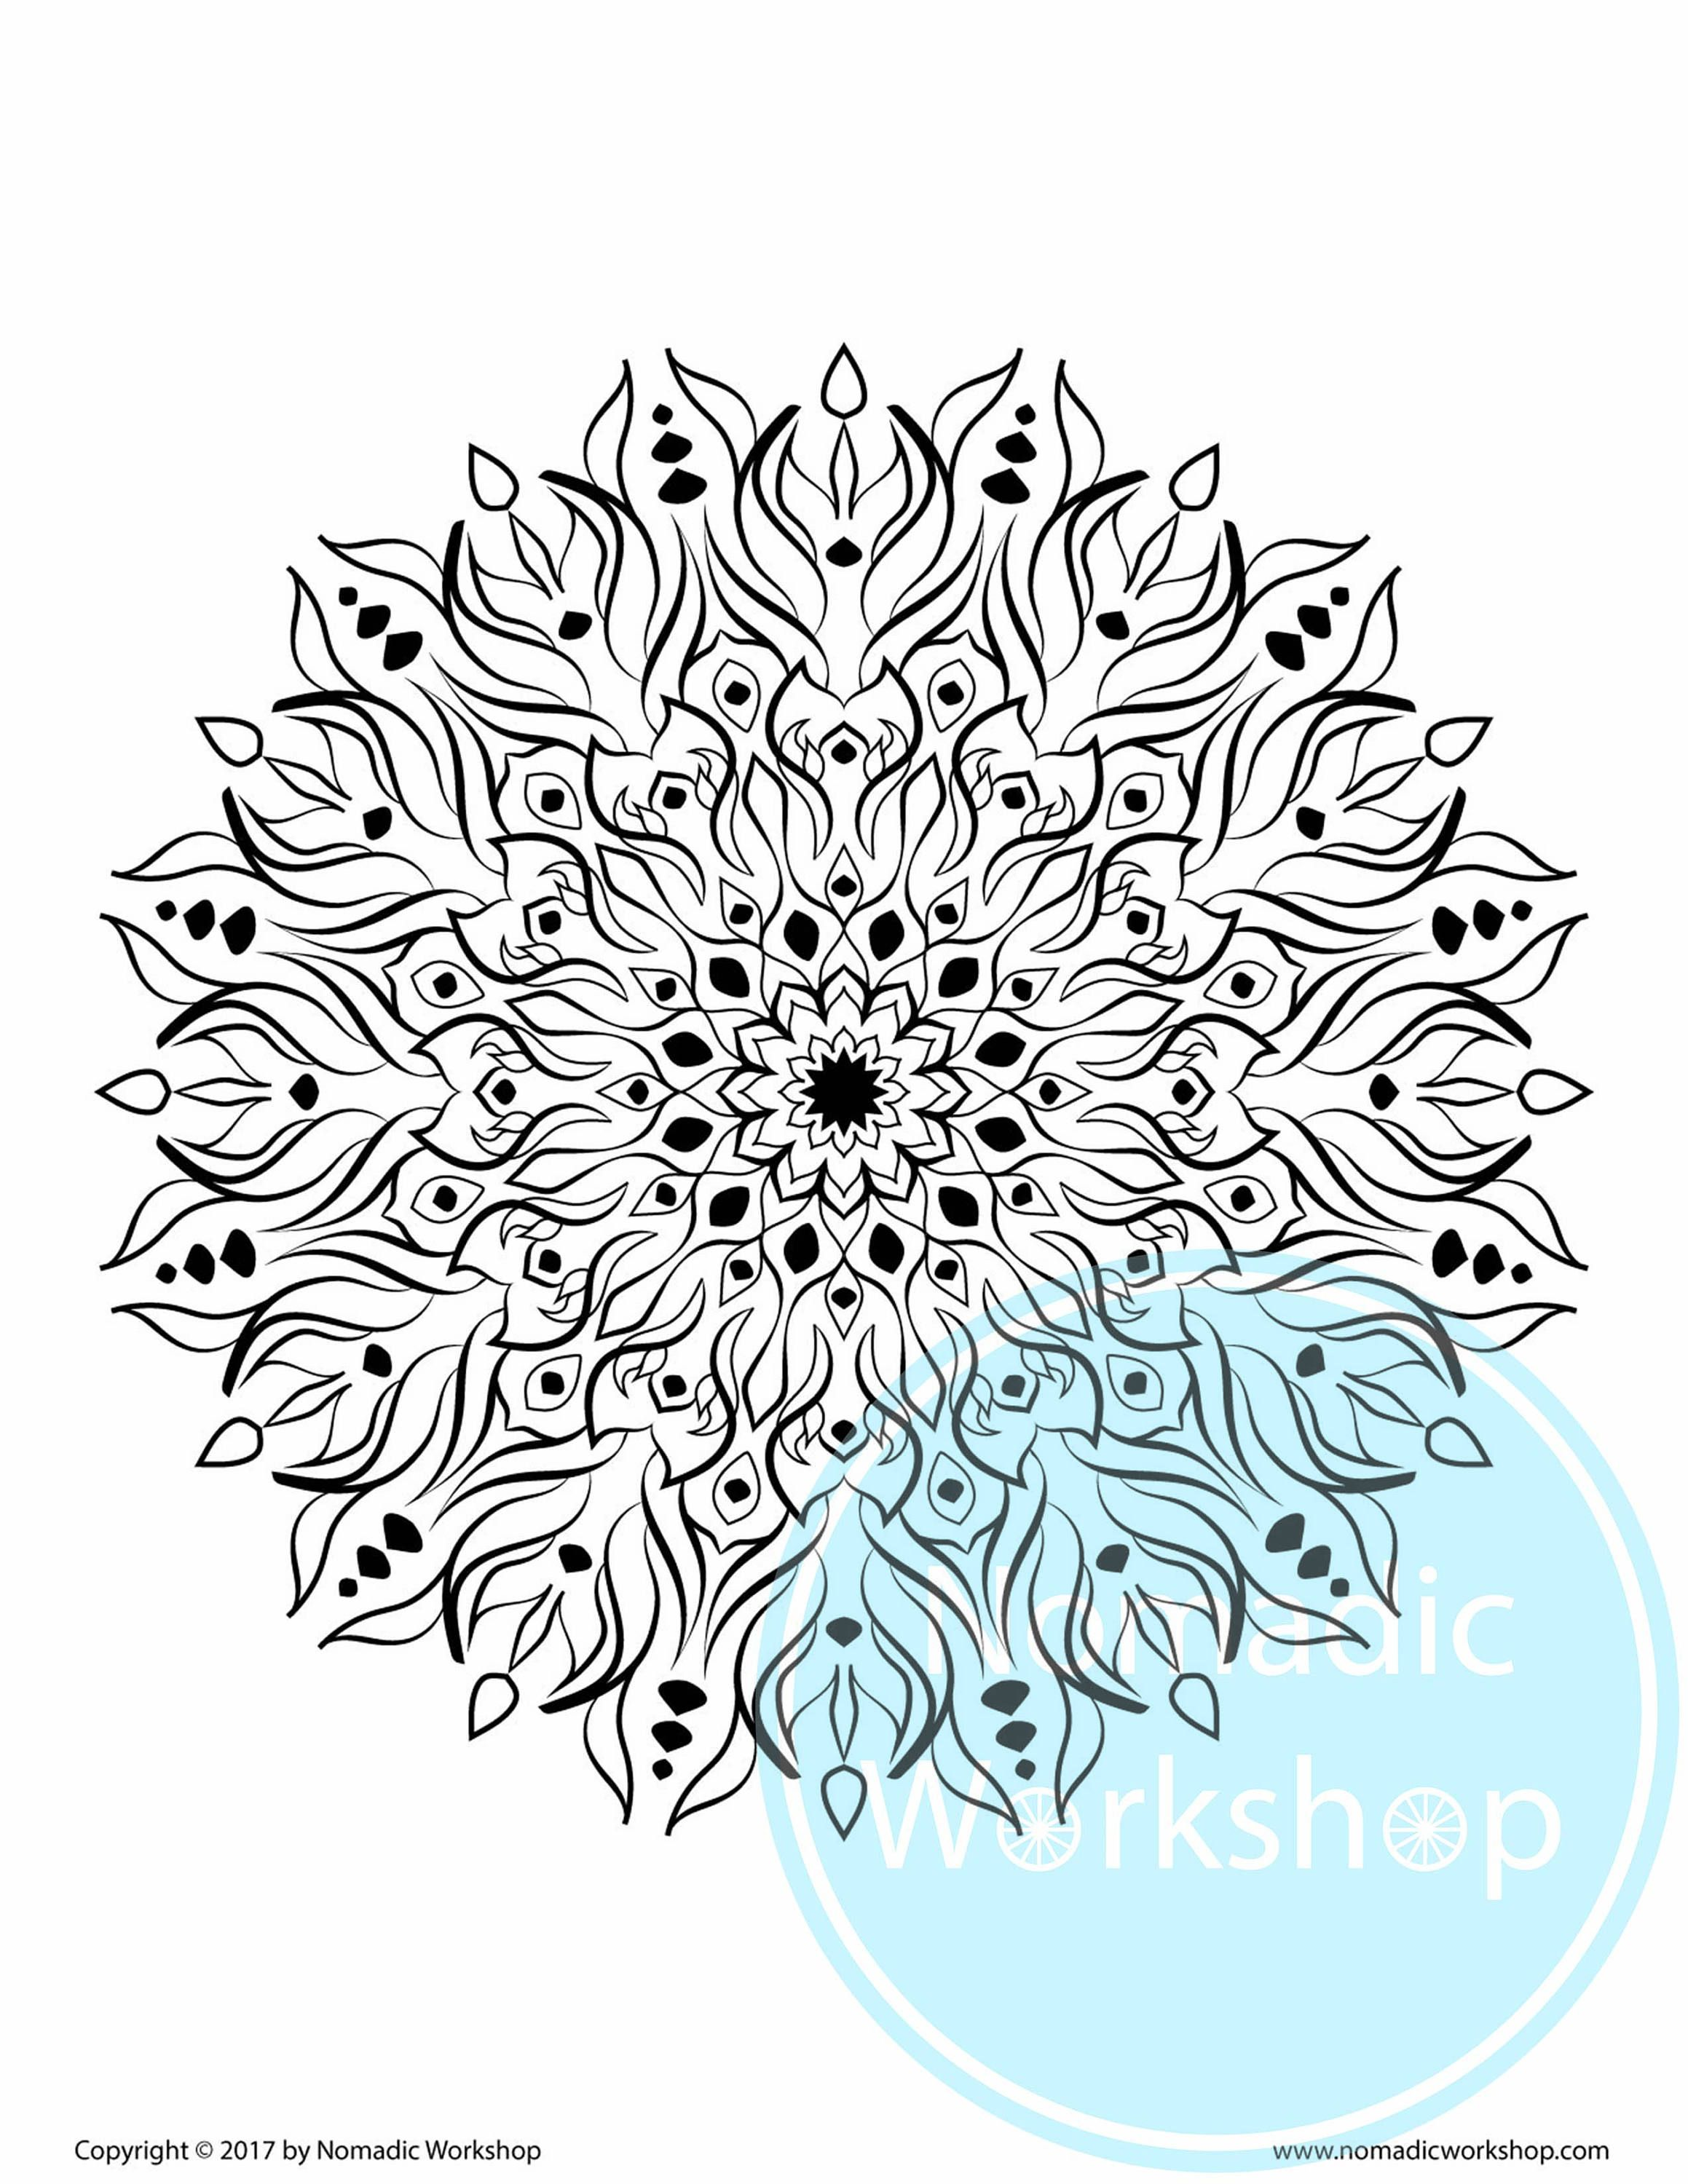 Stress relief coloring pages - Mandala 1 Free Coloring Page Coloring For Adults Adult Coloring Pages Instant